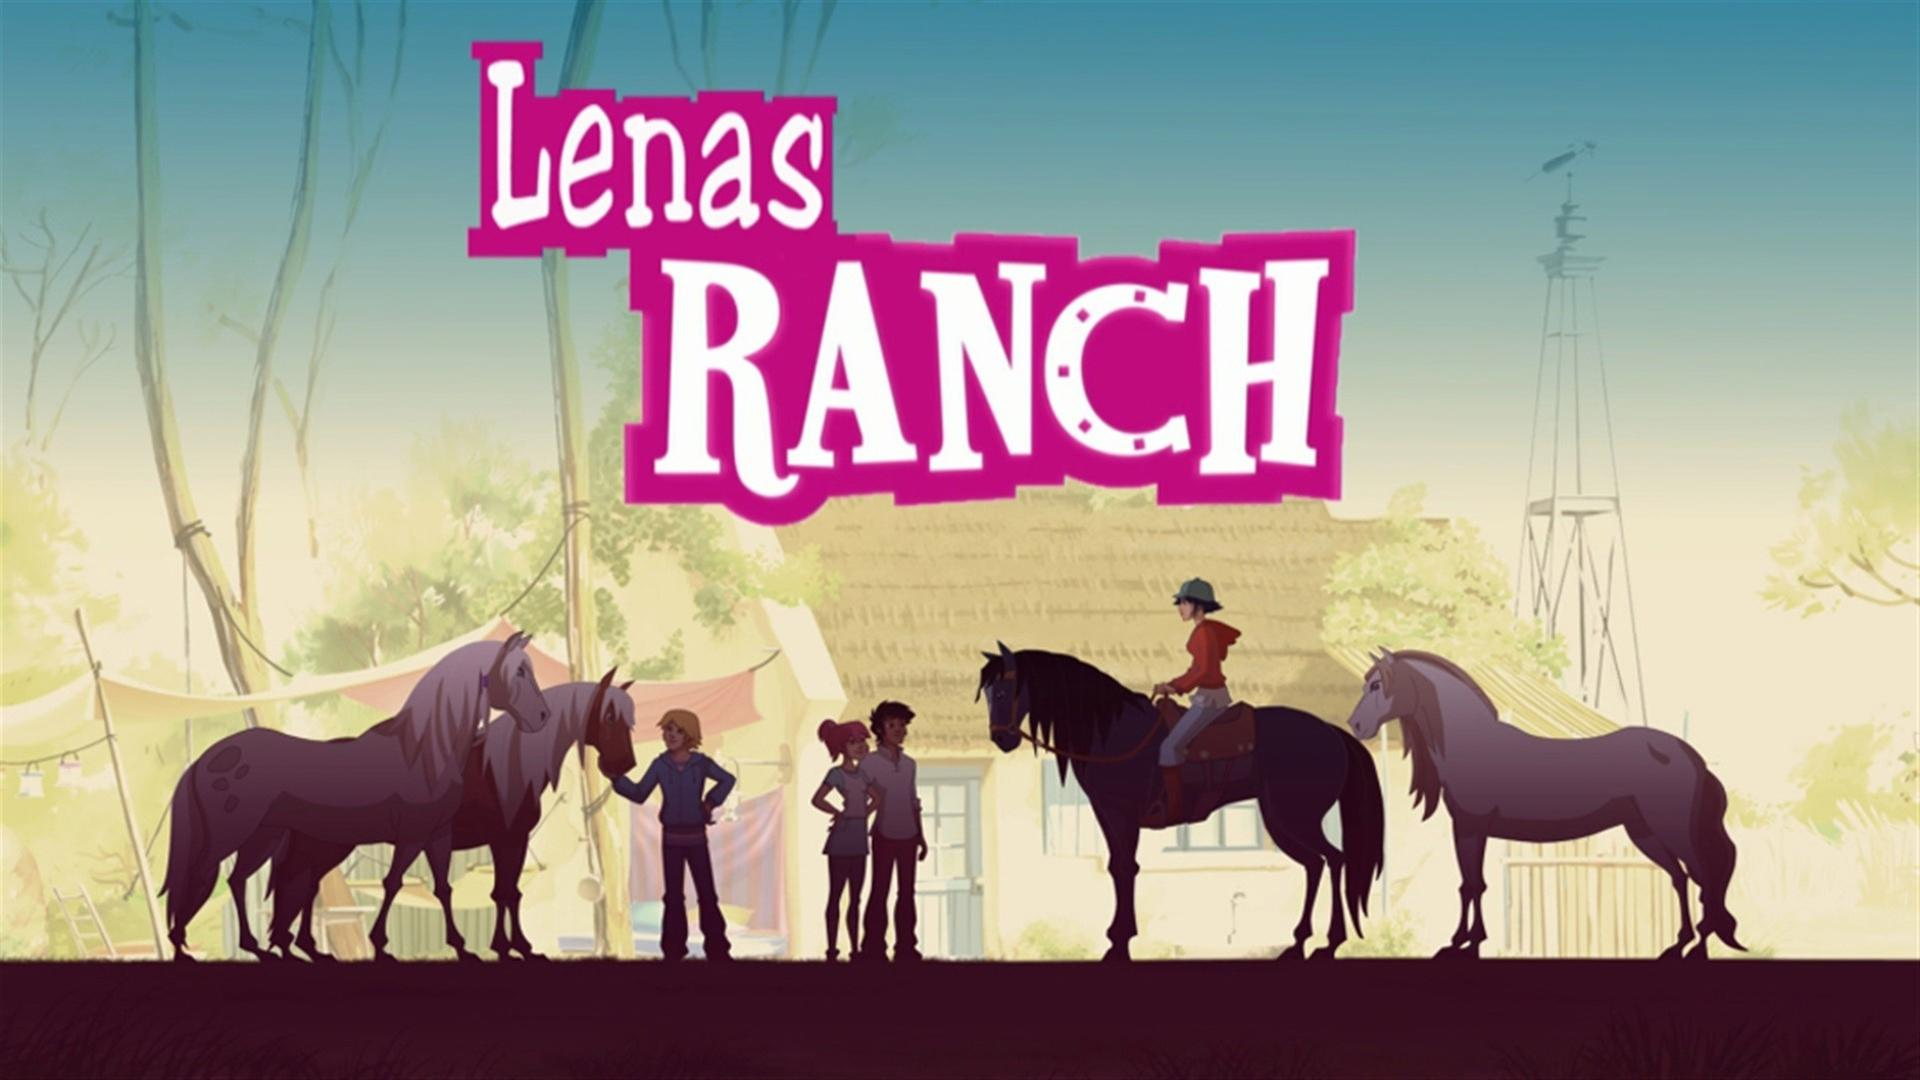 Kika Lenas Ranch